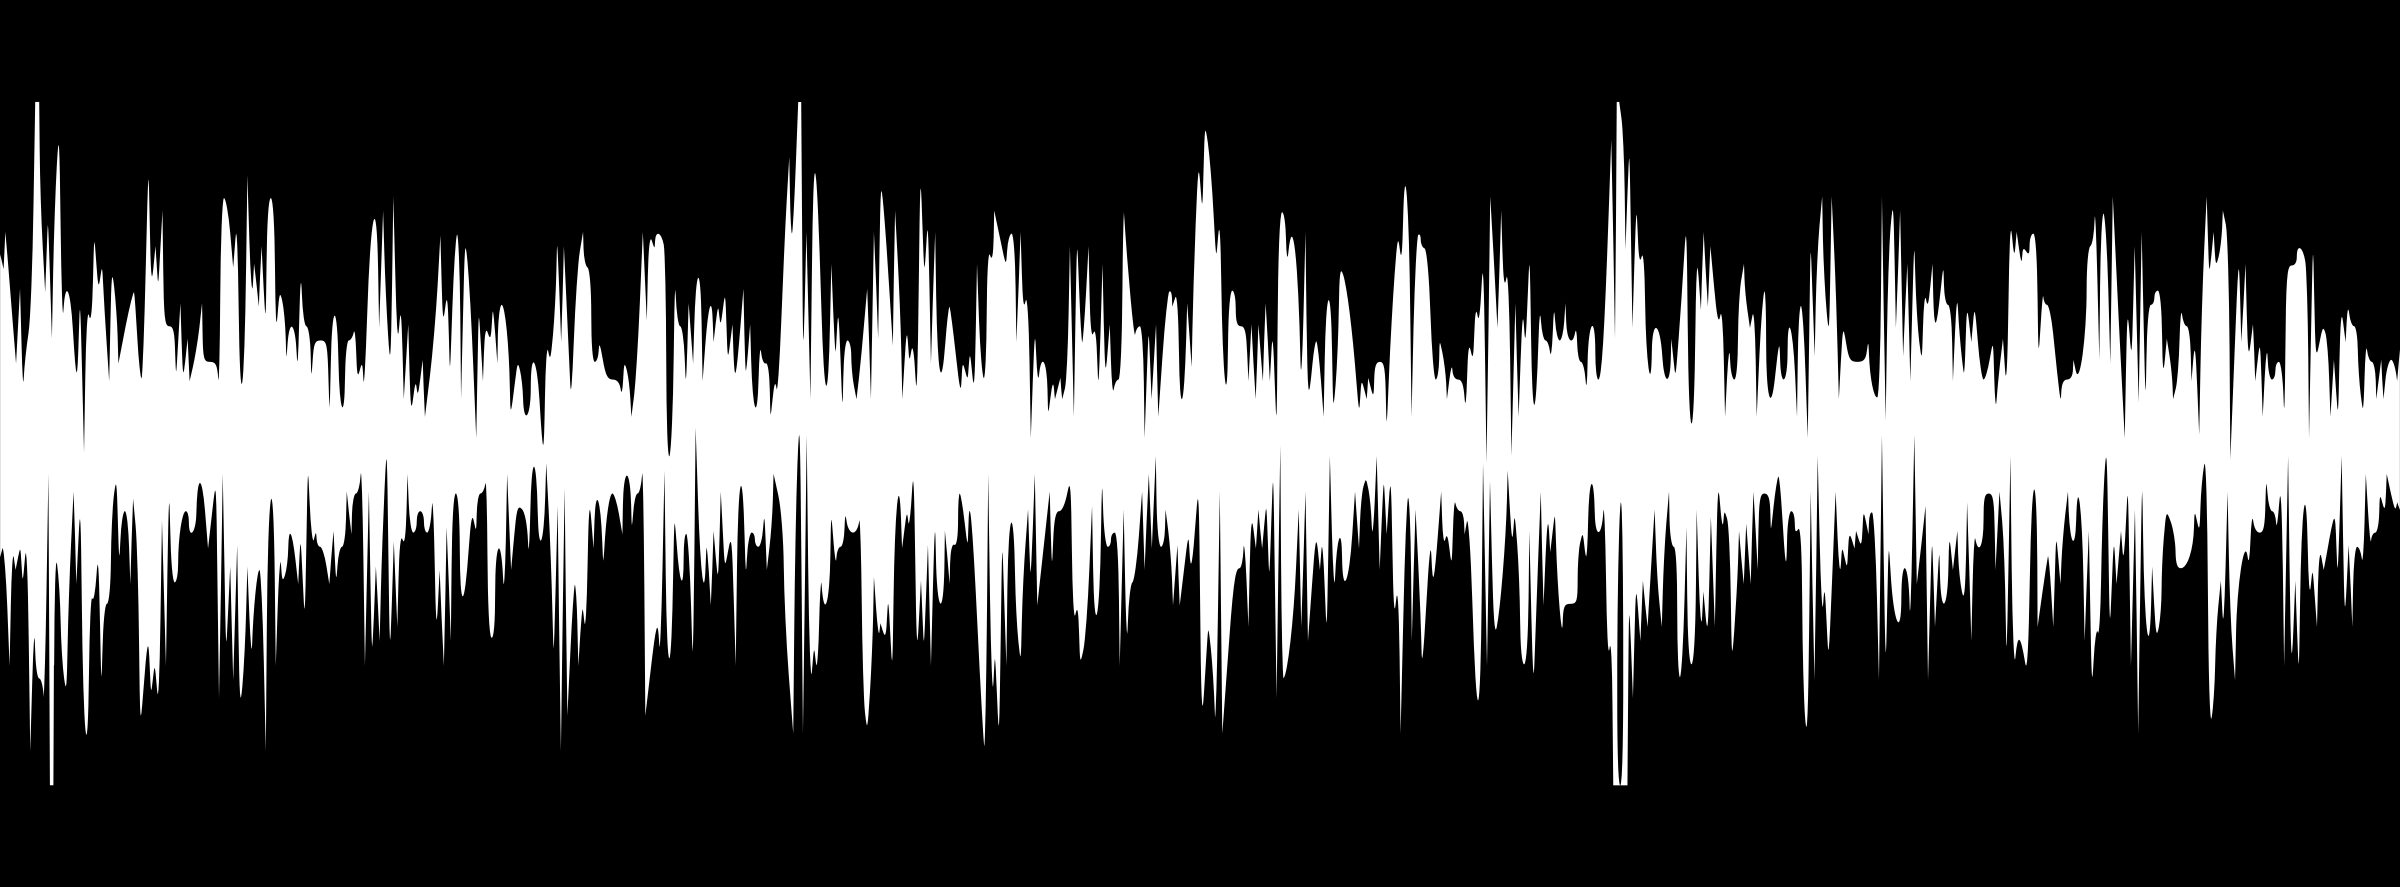 Sound Wave Dark by qubodup